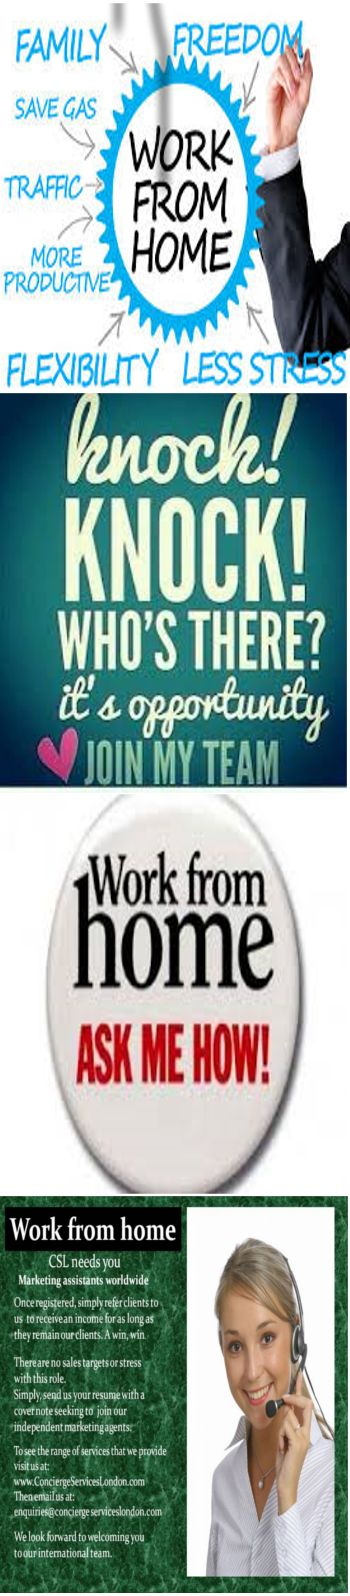 Find out how here. Work from home jobs, work from home part time, work from home data entry, work from home customer service, work from home companies, work from home jobs online, find a work from home job, ideas for a work from home business, how to be a work from home travel agent, telesales, selling jobs, marketing jobs, Freelance writing, freelance writing jobs, freelance jobs, freelance graphic design, freelance photography. www.conciergeserviceslondon,com